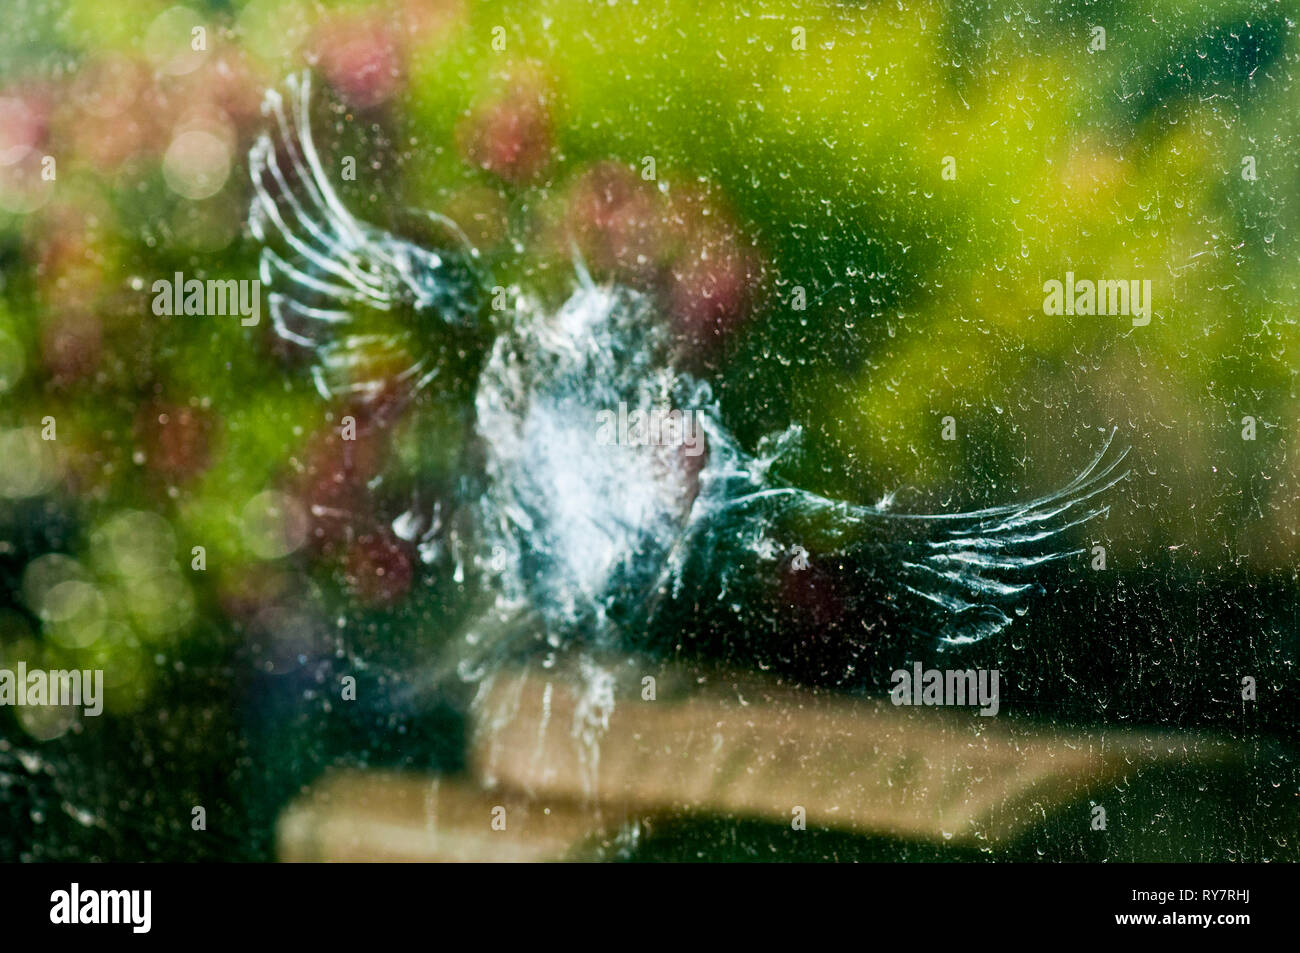 Dust left on picture window after a quail hit it. - Stock Image